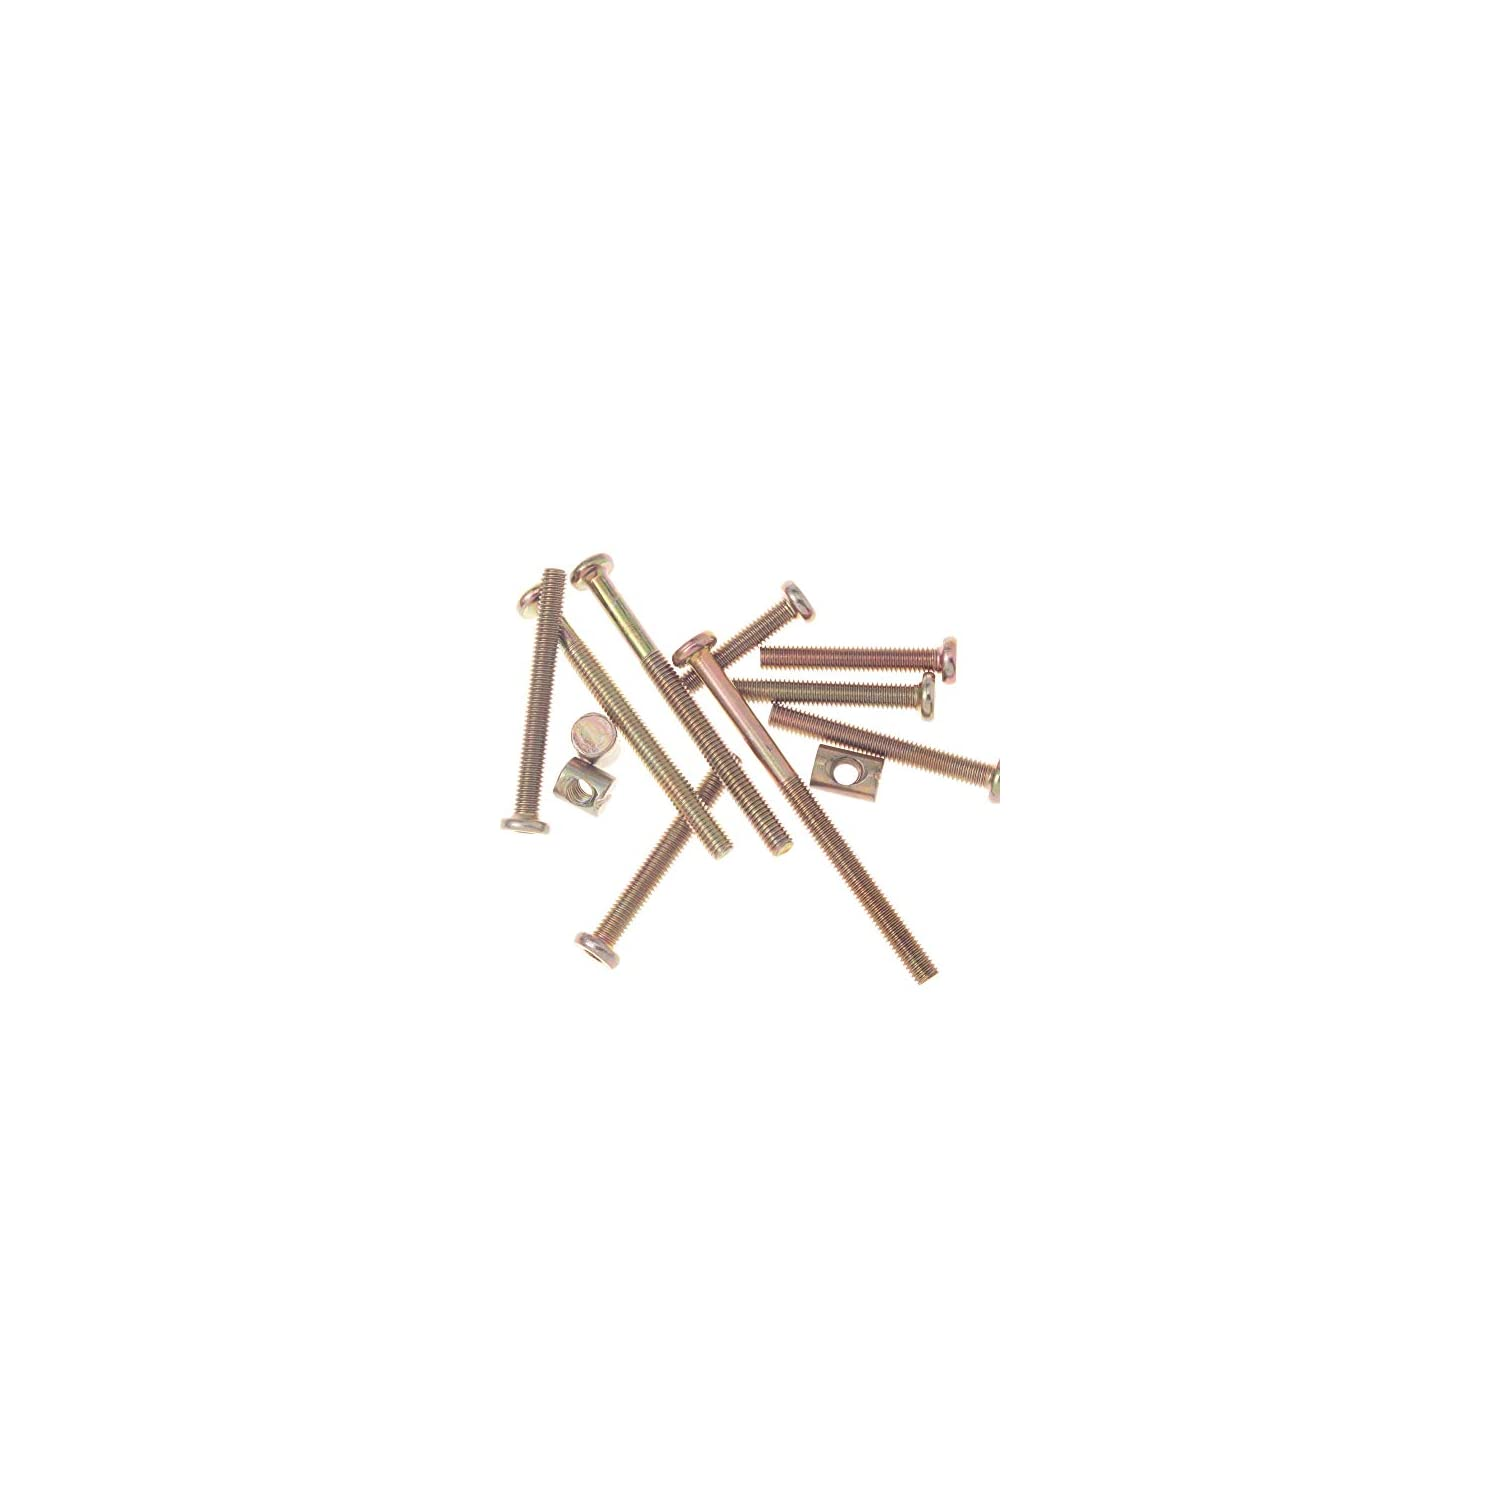 Crib Bolts and Screws Hardware Kit Barrel Nut for Furniture Baby Toddler Bed Crib Screws Replacement Parts M6 x 40mm / Set of 12